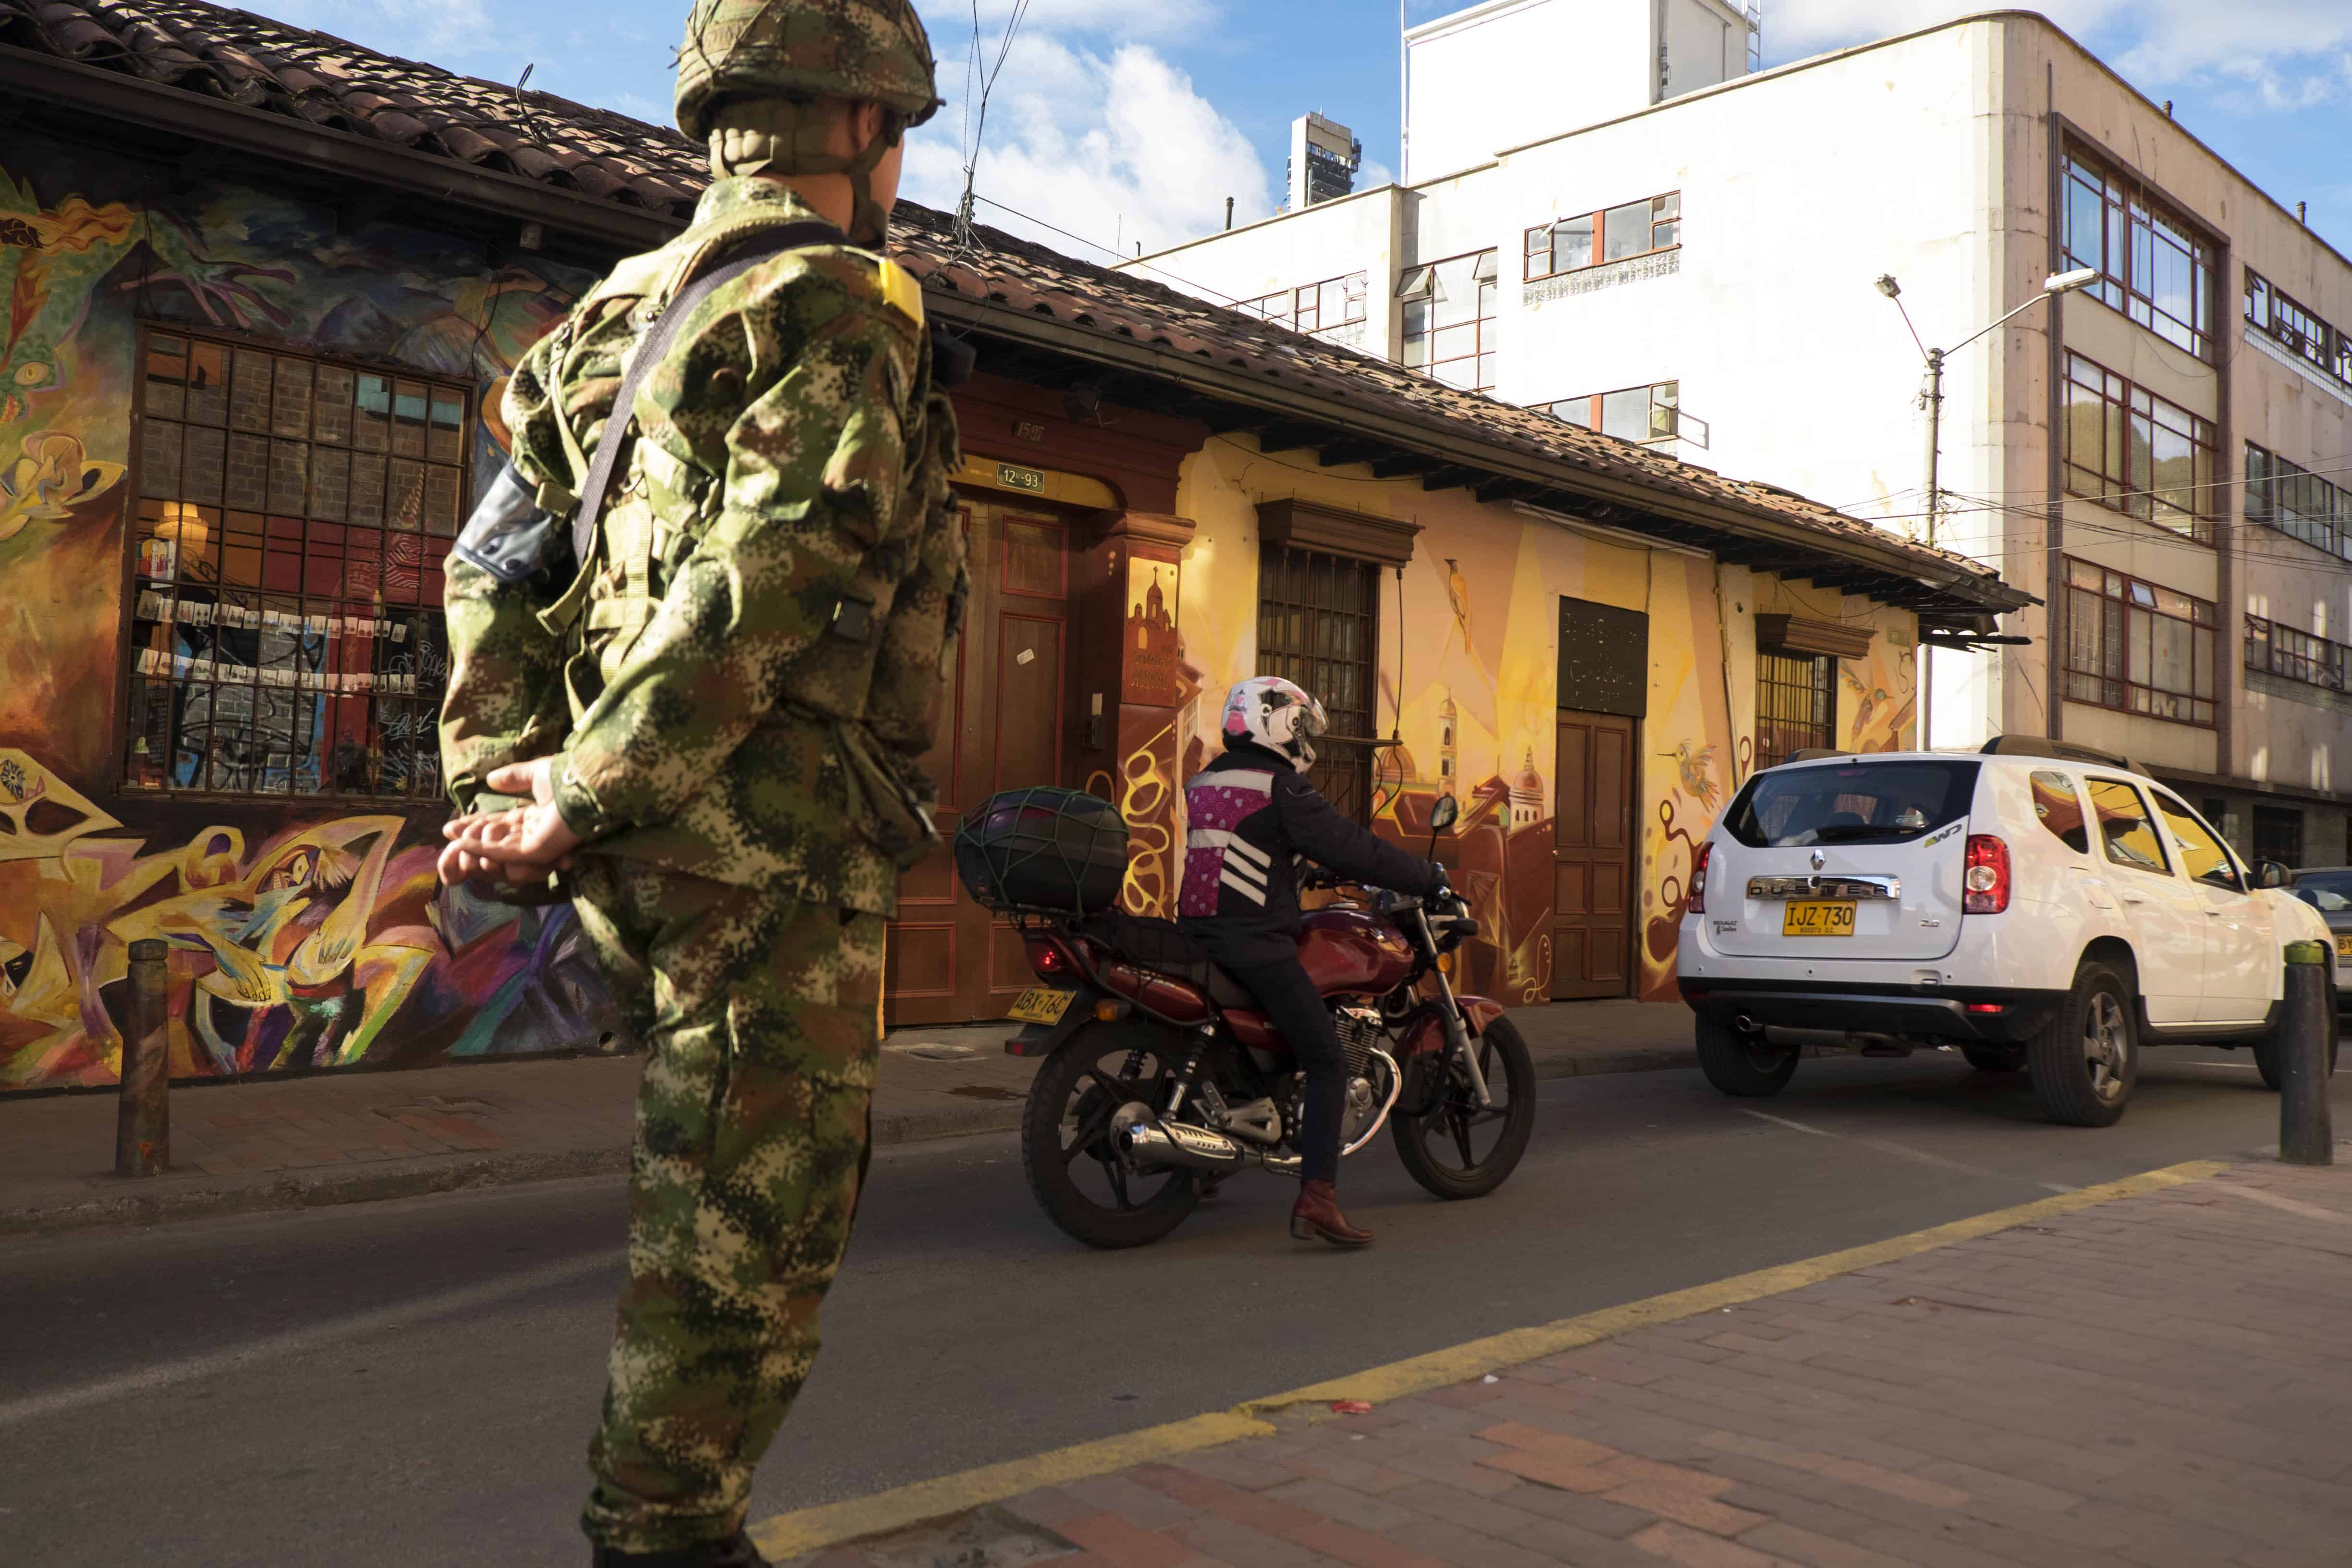 Colombia military: A soldier walks through the touristic area of Candelaria, Bogota.